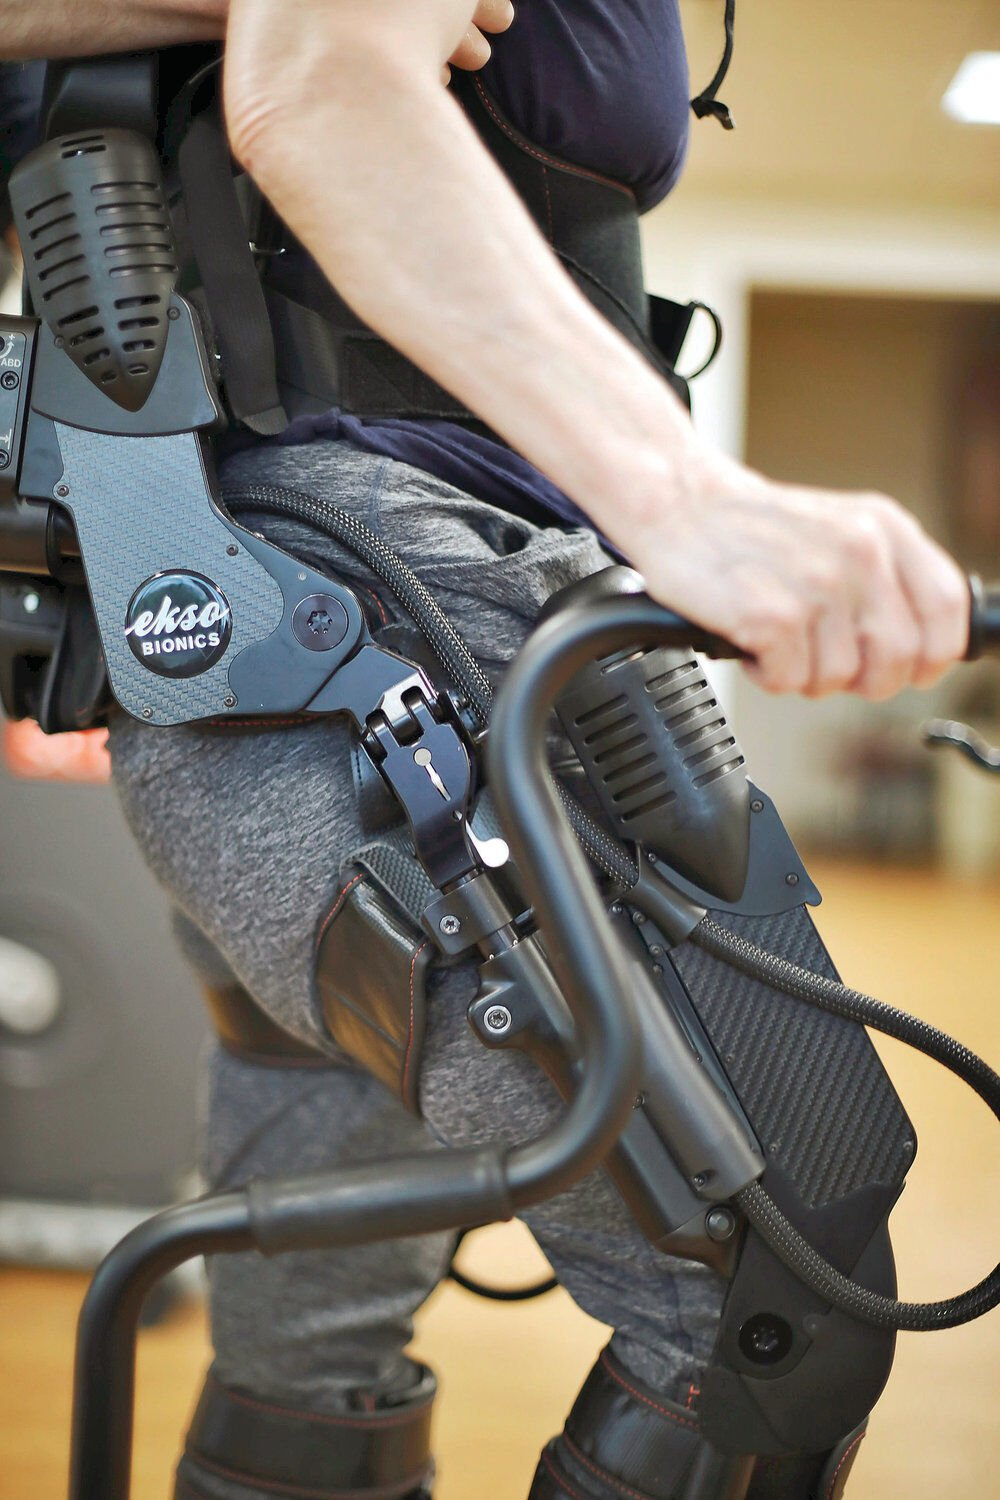 Robotic exoskeleton upgrades physical therapy, patient outlooks at BMC